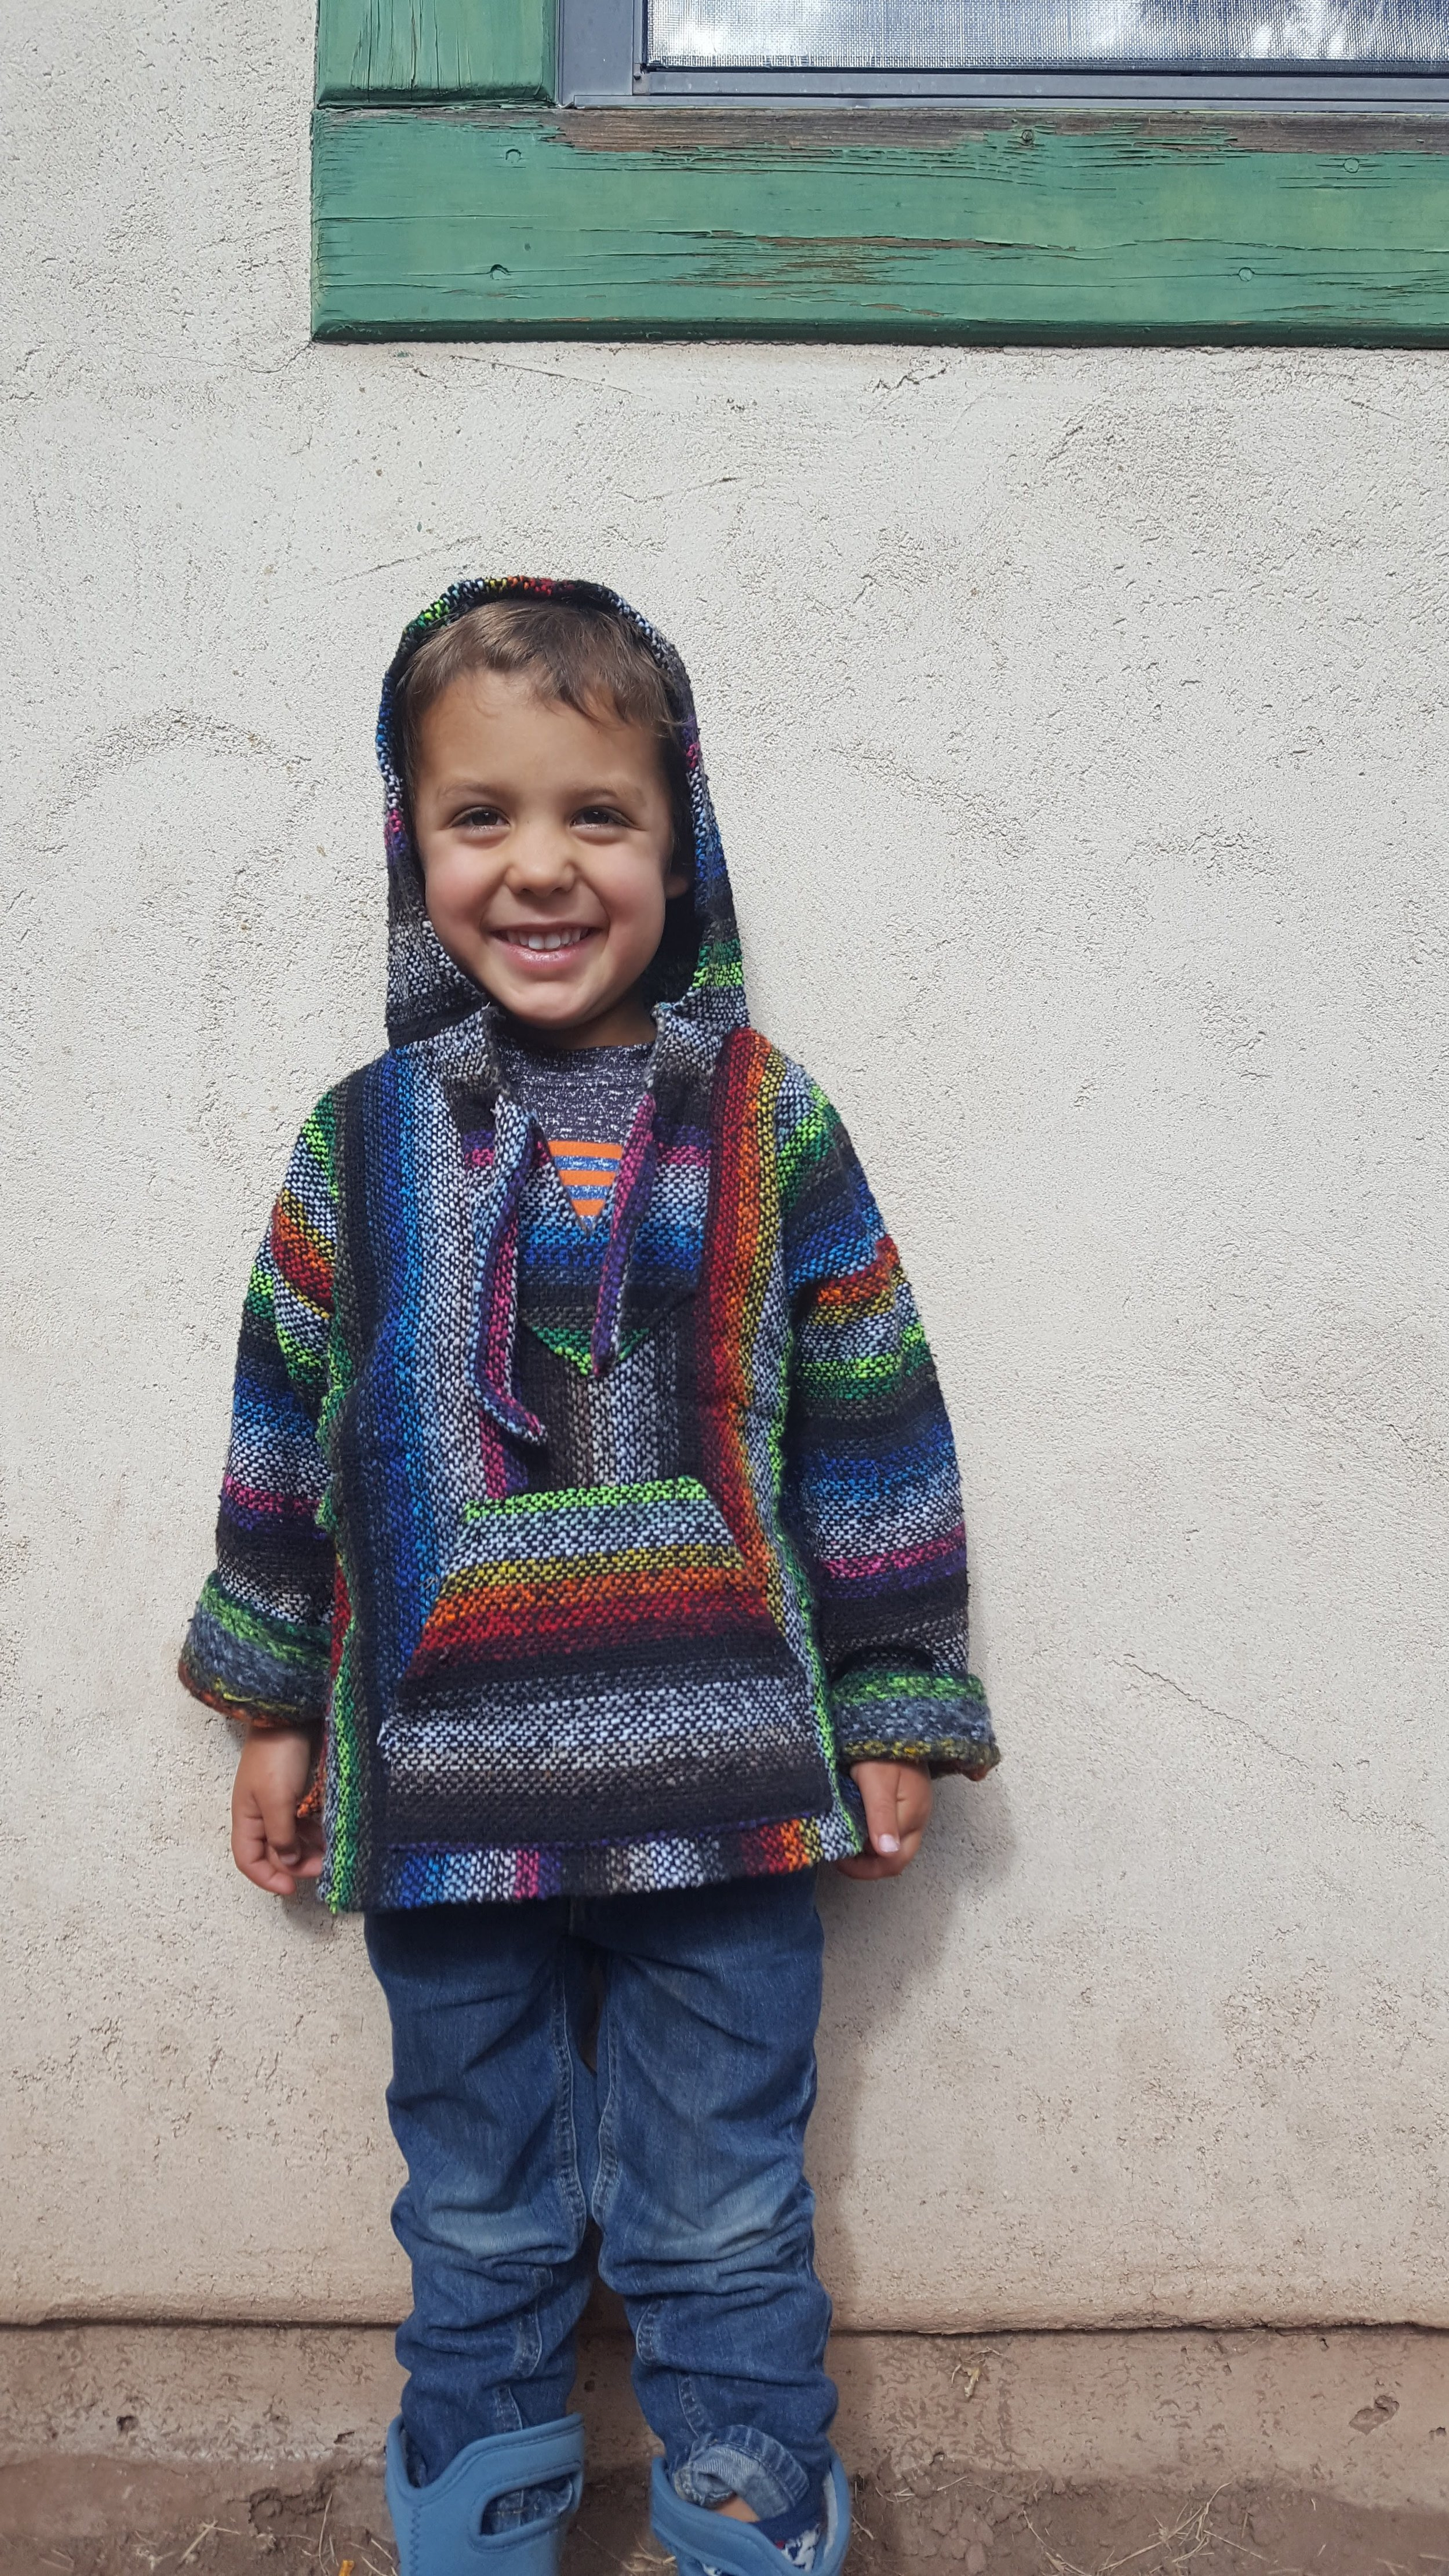 One of the two awesome Baja ponchos we bargained for!